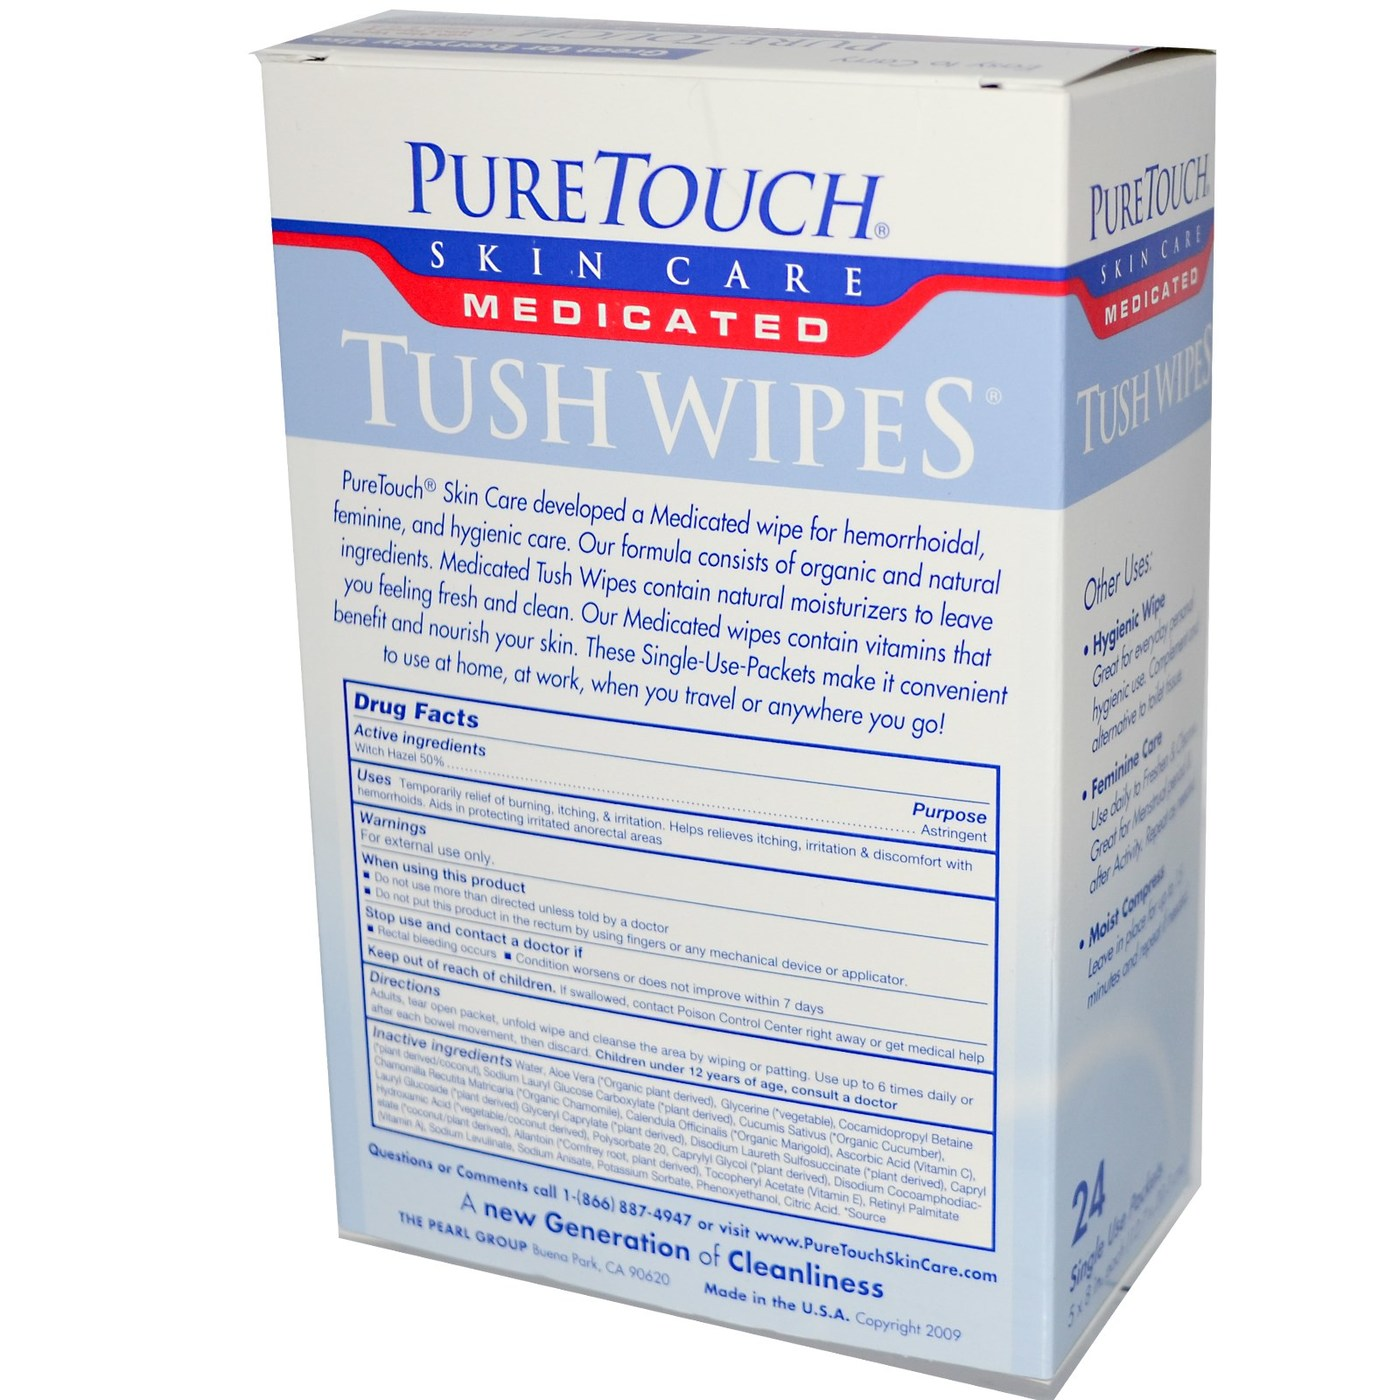 Puretouch Skin Care Medicated Tush Wipes - 24 Single Use Packets